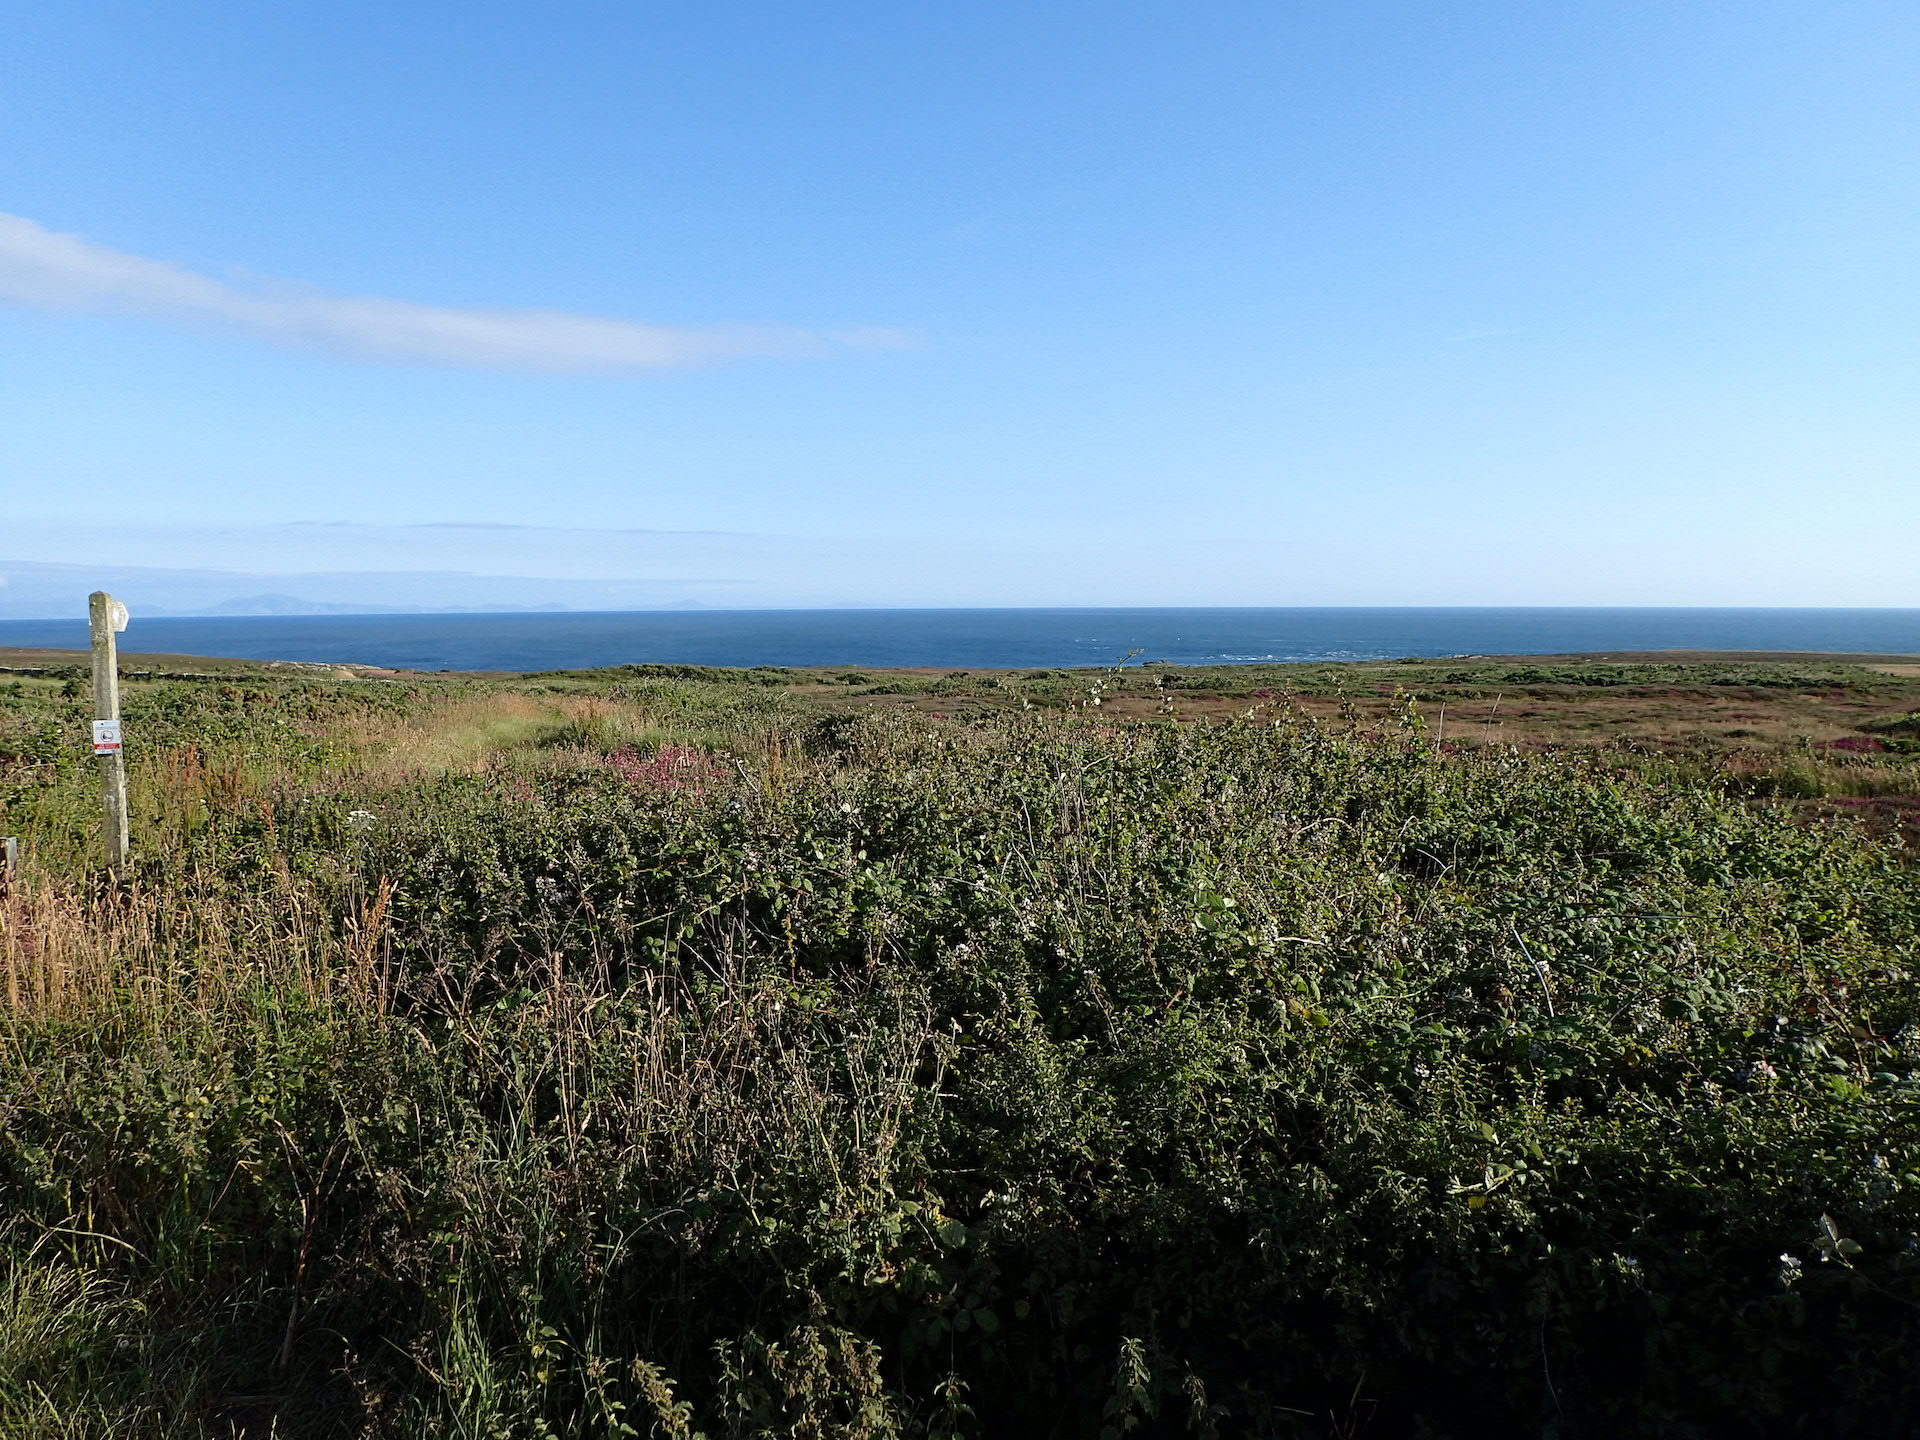 2019-07-13 PM in the AM followed by LCC to Rhoscolyn and back